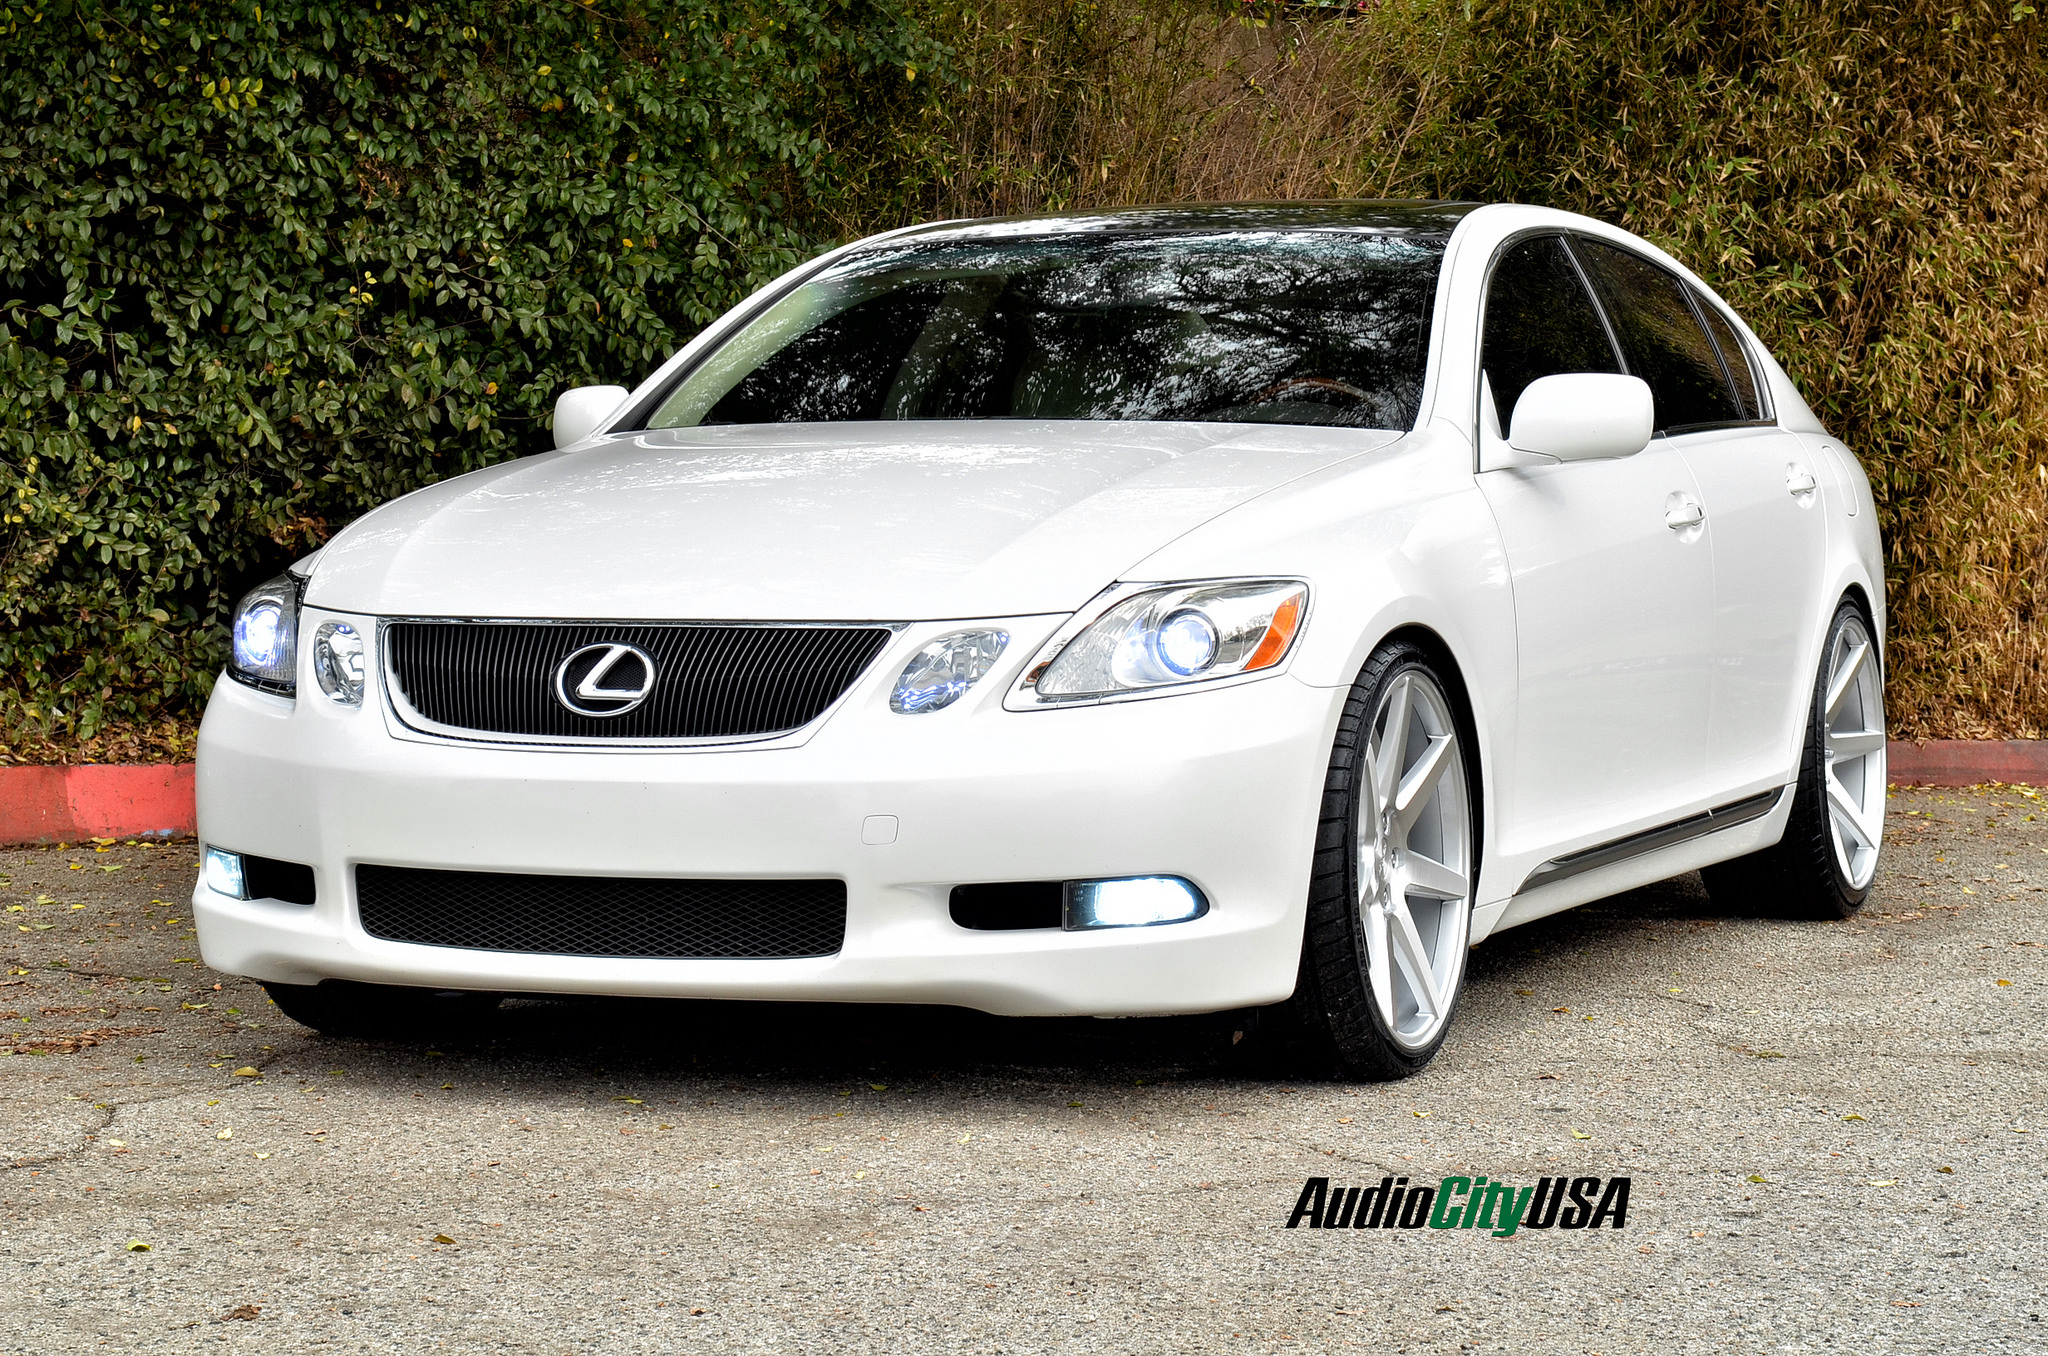 2008 lexus gs 350 lowered on rennen crl 70 autospice. Black Bedroom Furniture Sets. Home Design Ideas